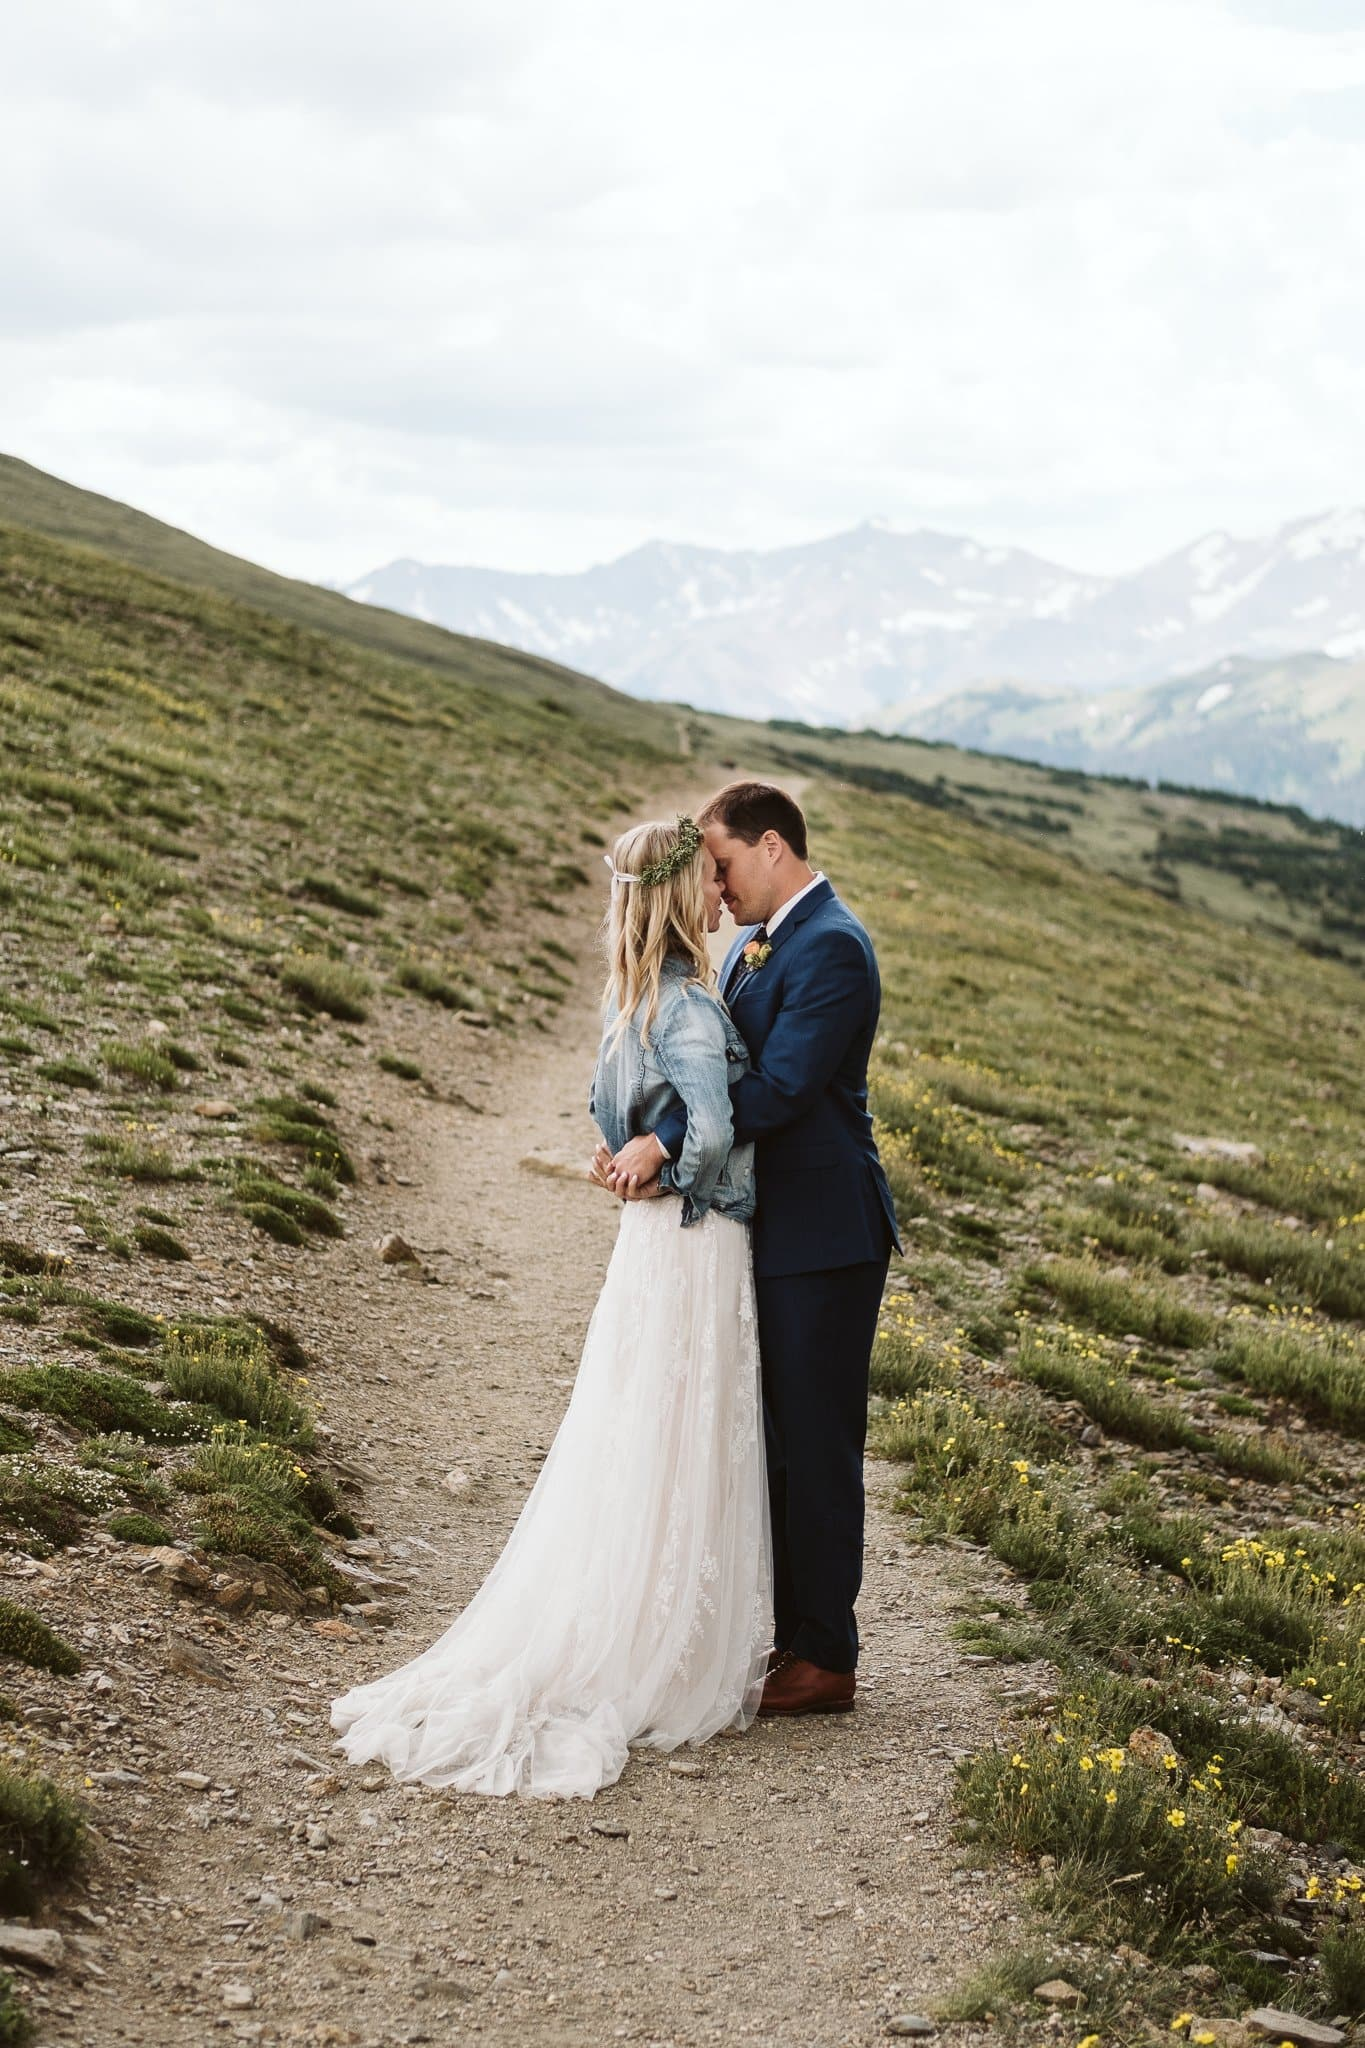 Bride and groom hiking elopement photos at Trail Ridge Road, Rocky Mountain National Park wedding, bride in denim jacket and wedding dress